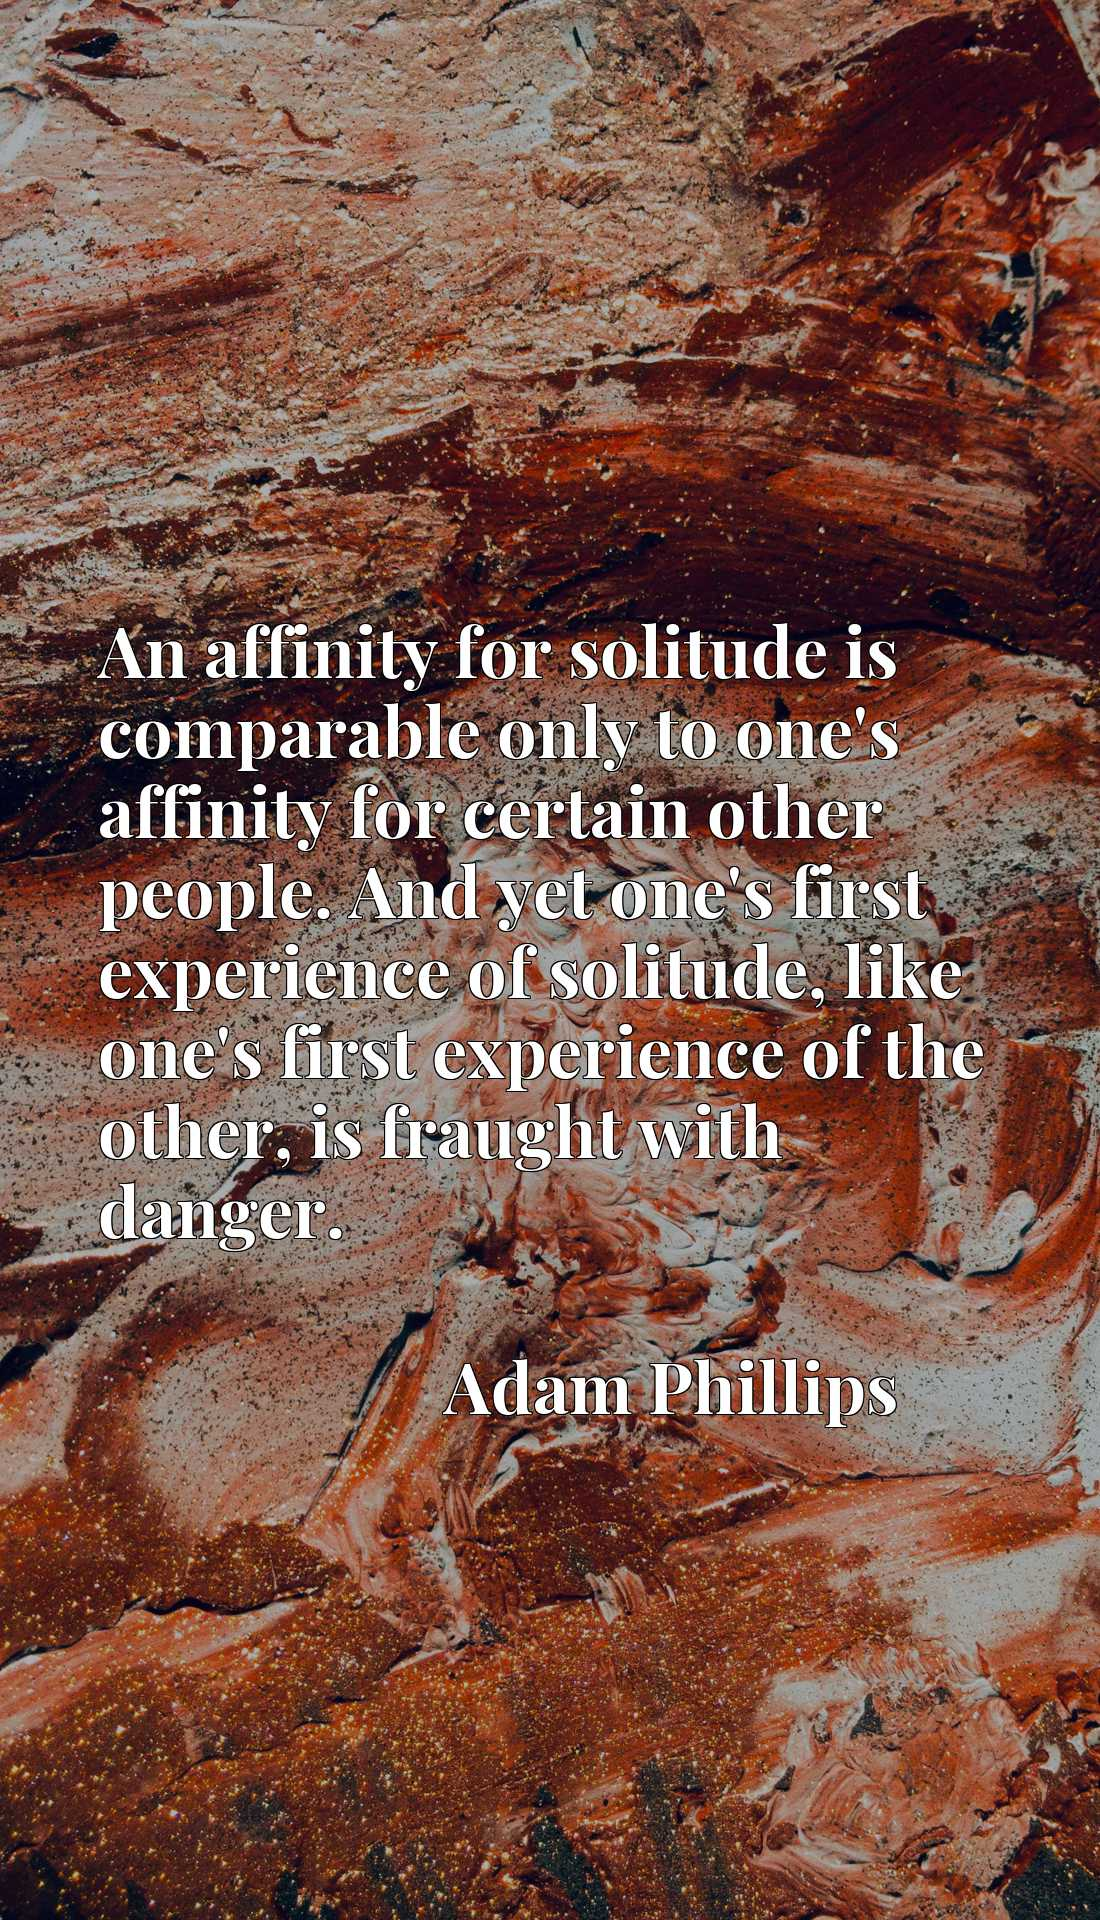 An affinity for solitude is comparable only to one's affinity for certain other people. And yet one's first experience of solitude, like one's first experience of the other, is fraught with danger.